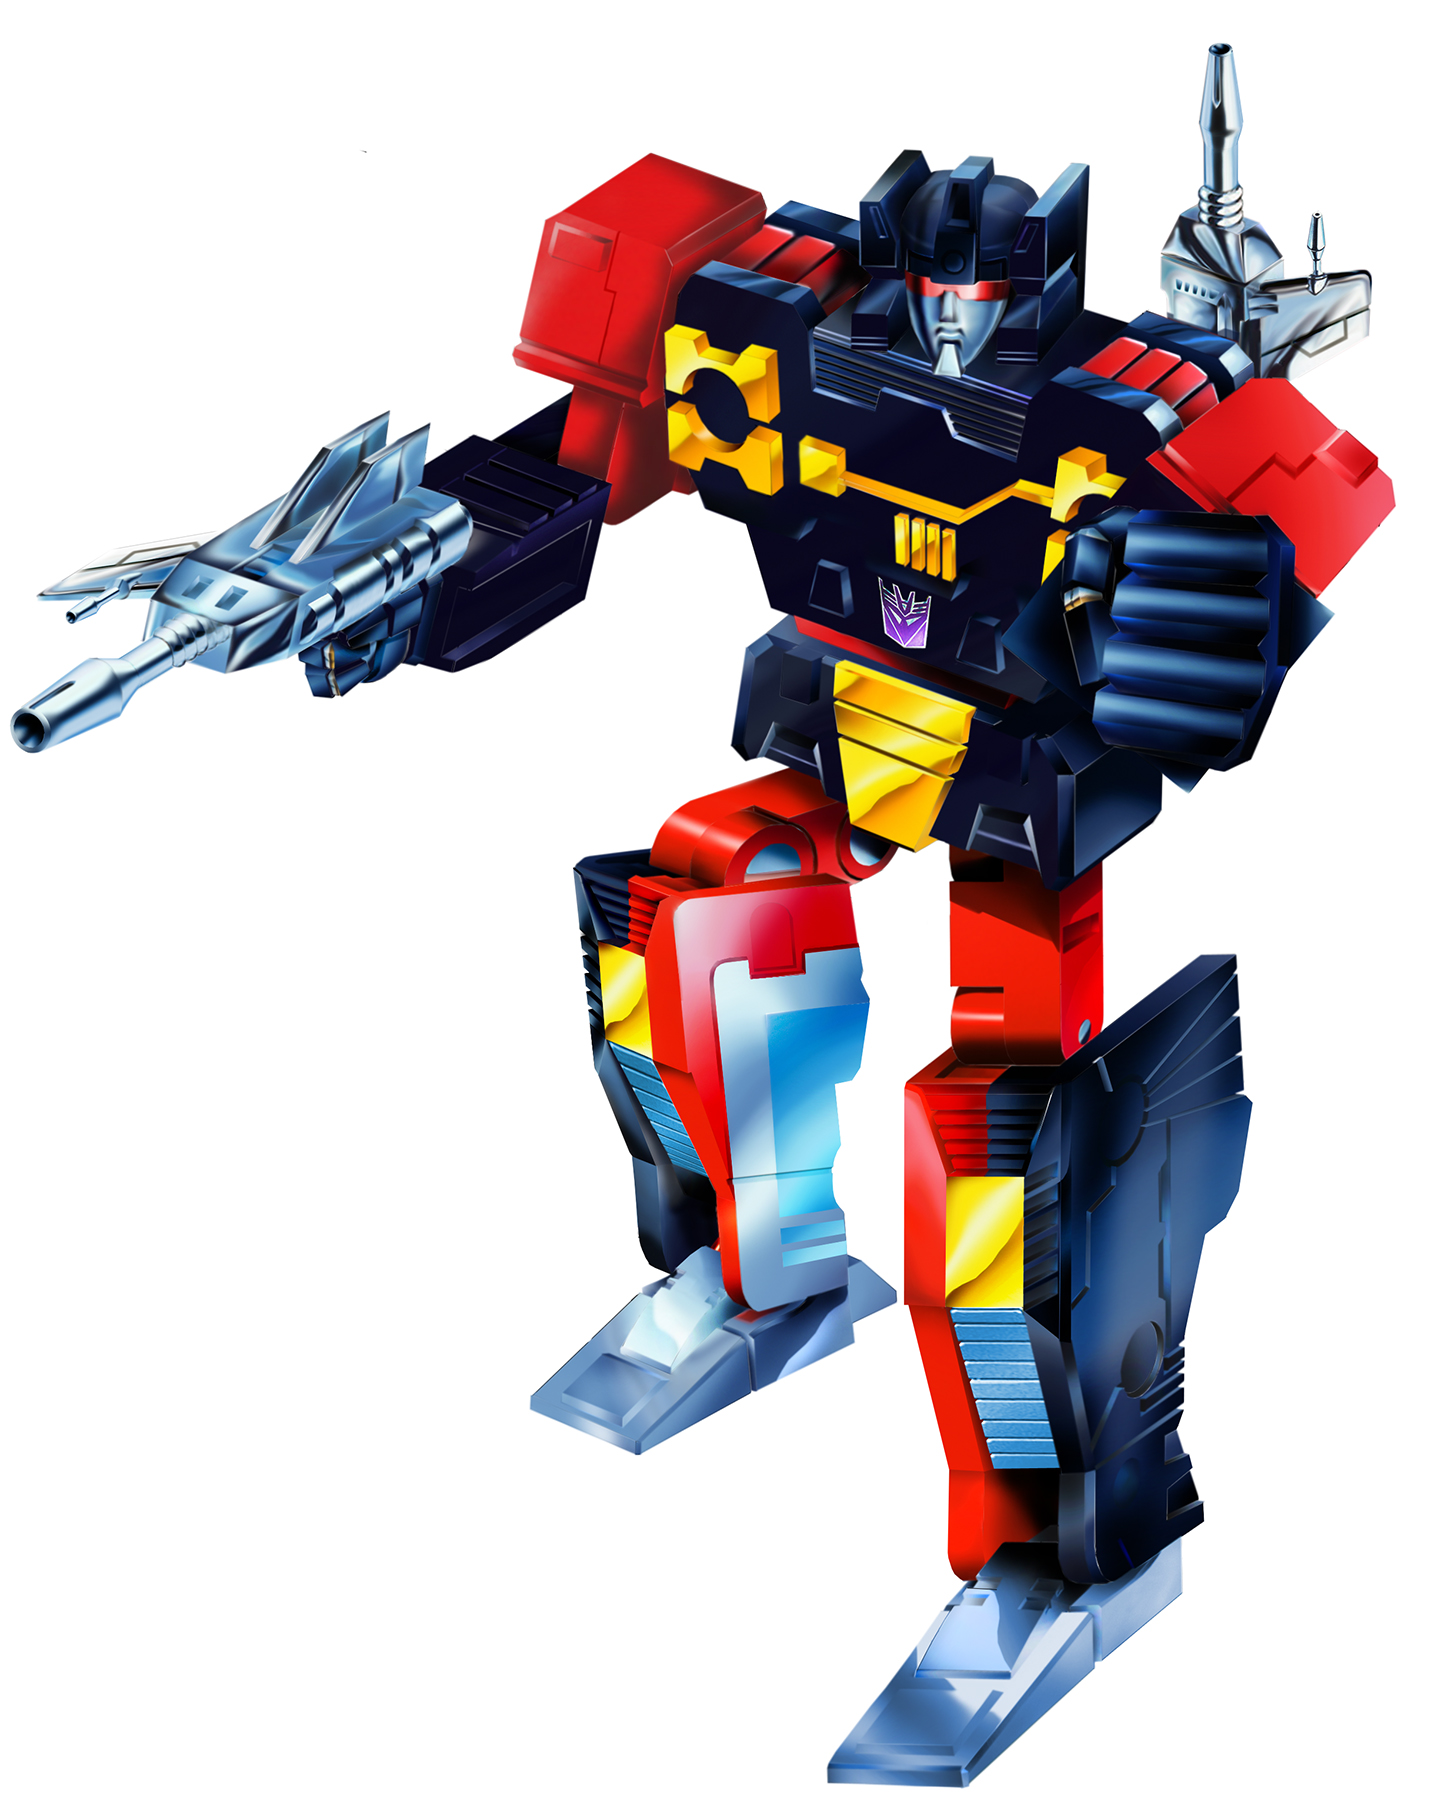 masterpiece rumble g1 stlye art tfw2005com